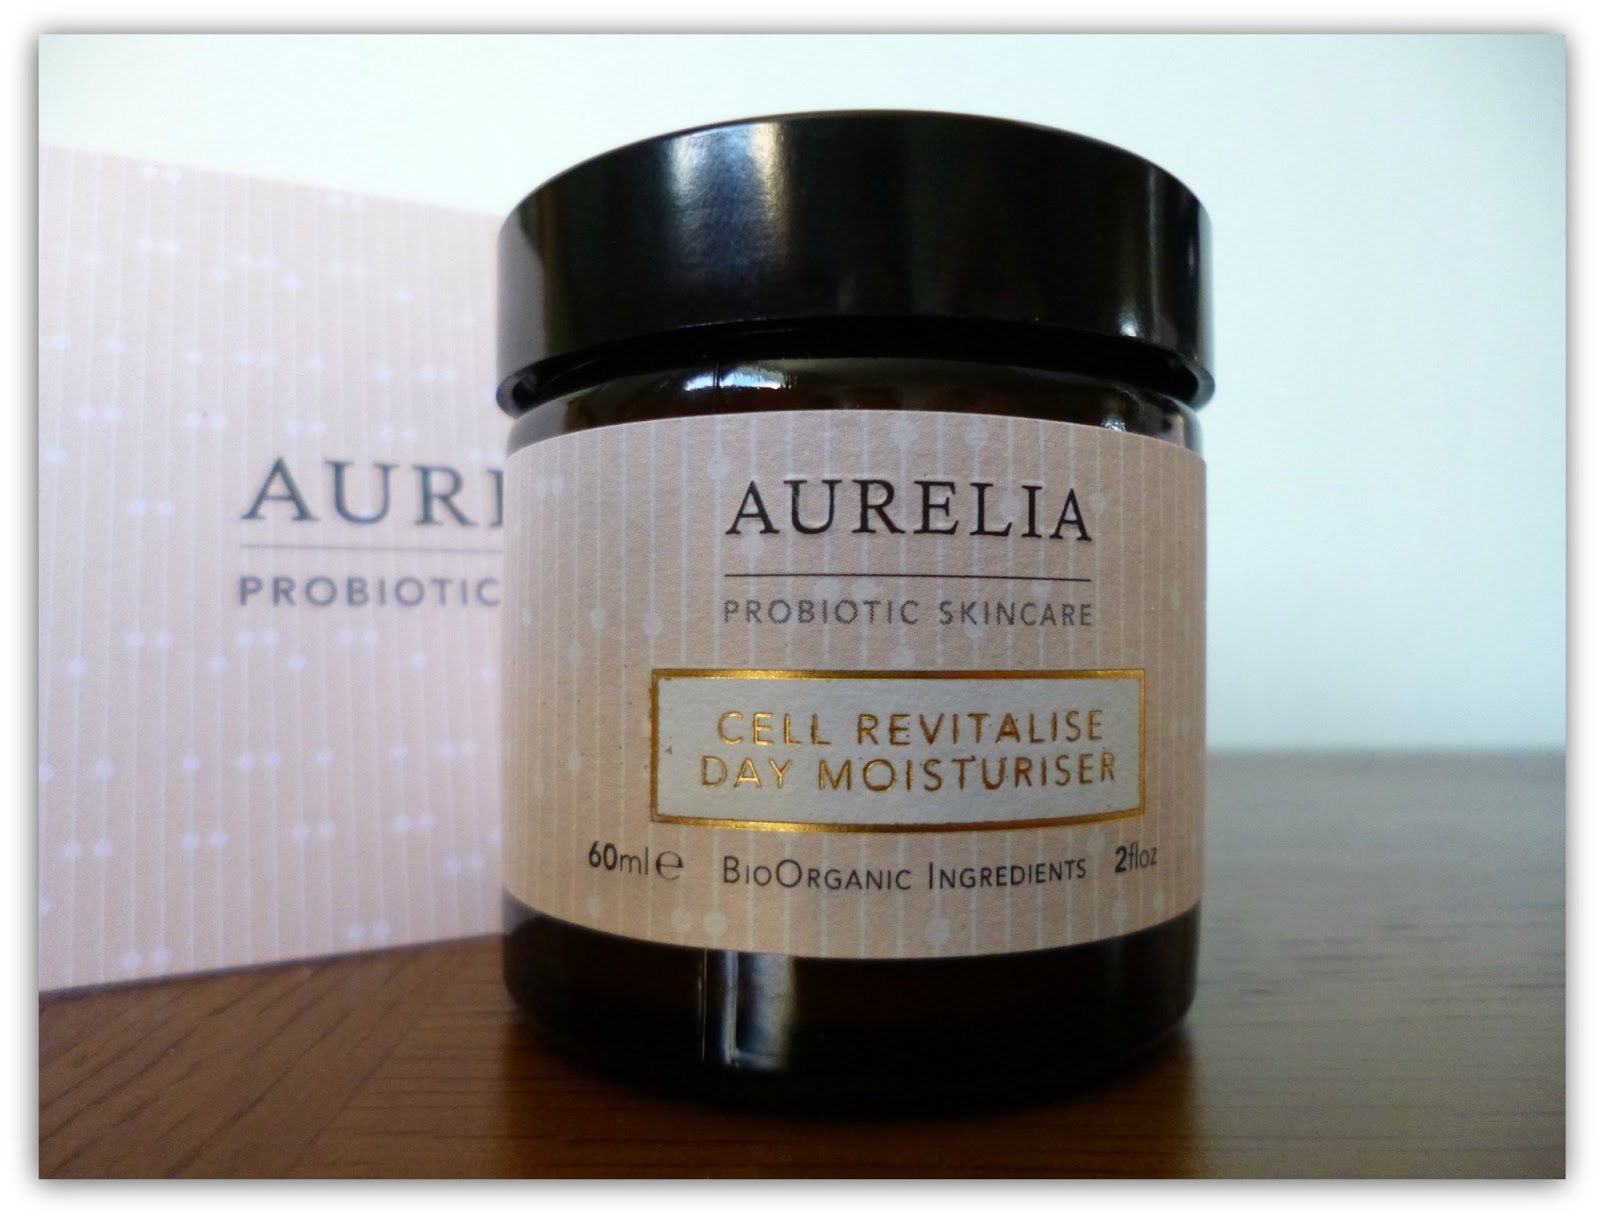 Aurelia probiotic skincare – Cell revitalise day moisturiser rave review